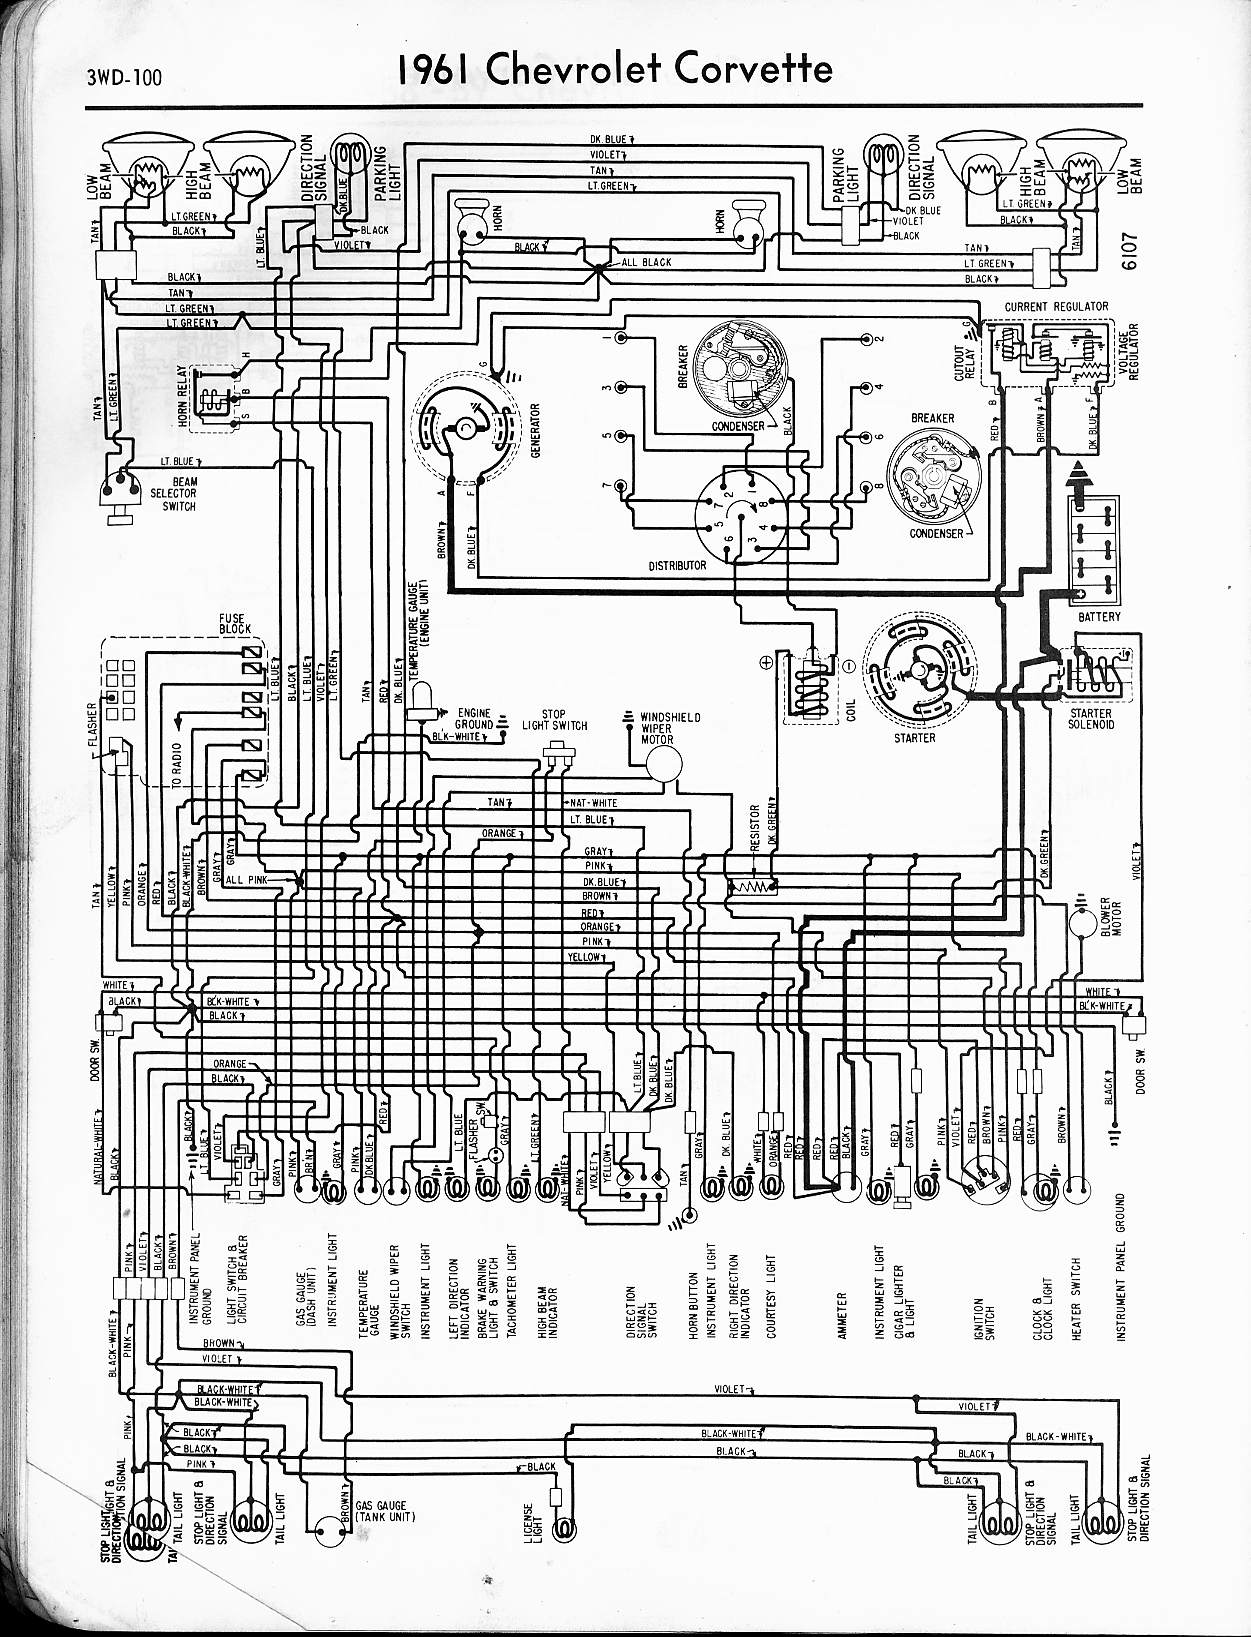 MWireChev61_3WD 100 57 65 chevy wiring diagrams Basic Turn Signal Wiring Diagram at edmiracle.co